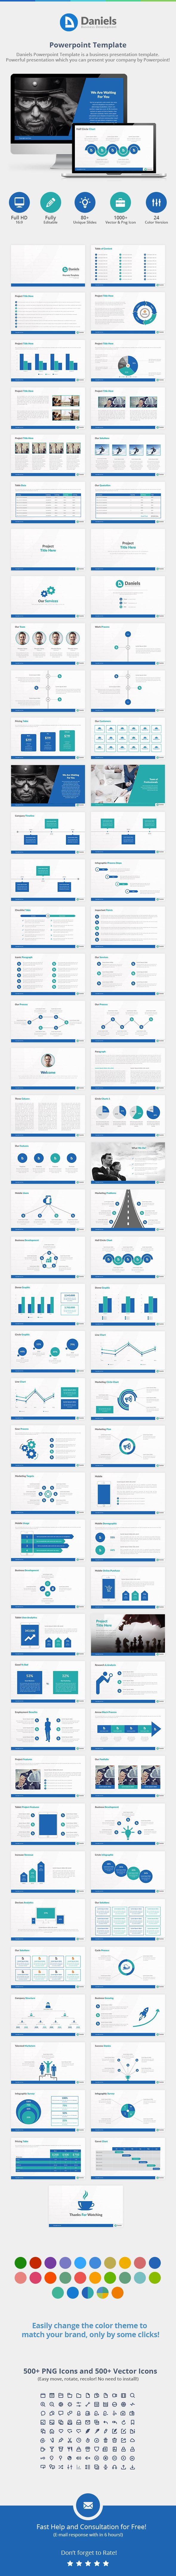 Daniels Powerpoint Presentation Template. Download here: http://graphicriver.net/item/daniels-powerpoint-presentation-template/15135497?ref=ksioks